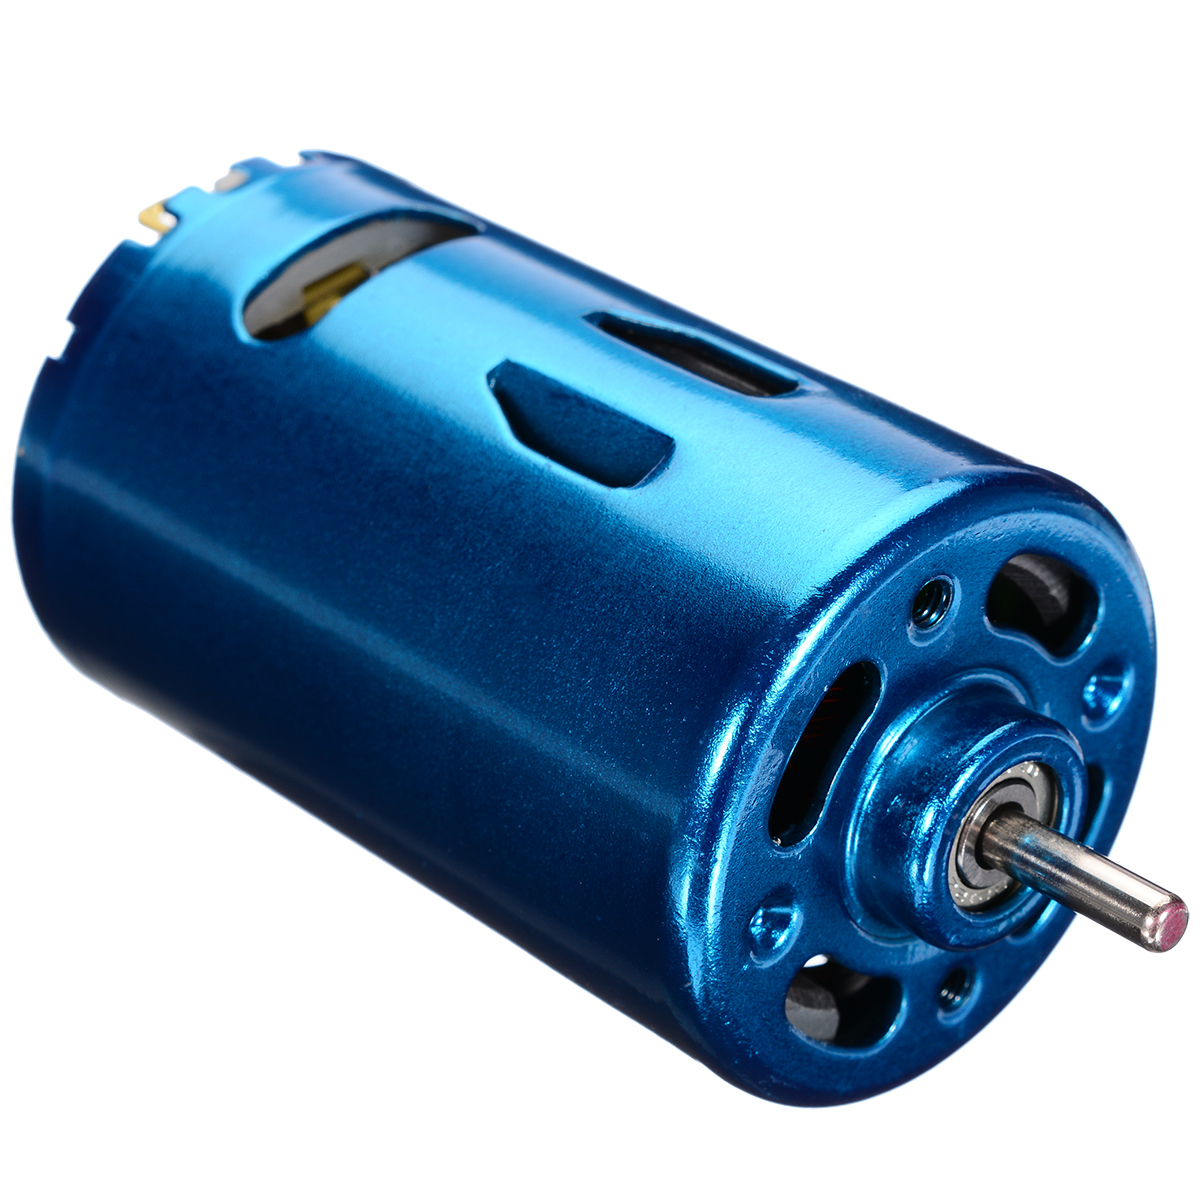 1Pcs DC3-12V GB37-555 DC Gear Box Motor Large Torque Low Speed For DIY Accessory